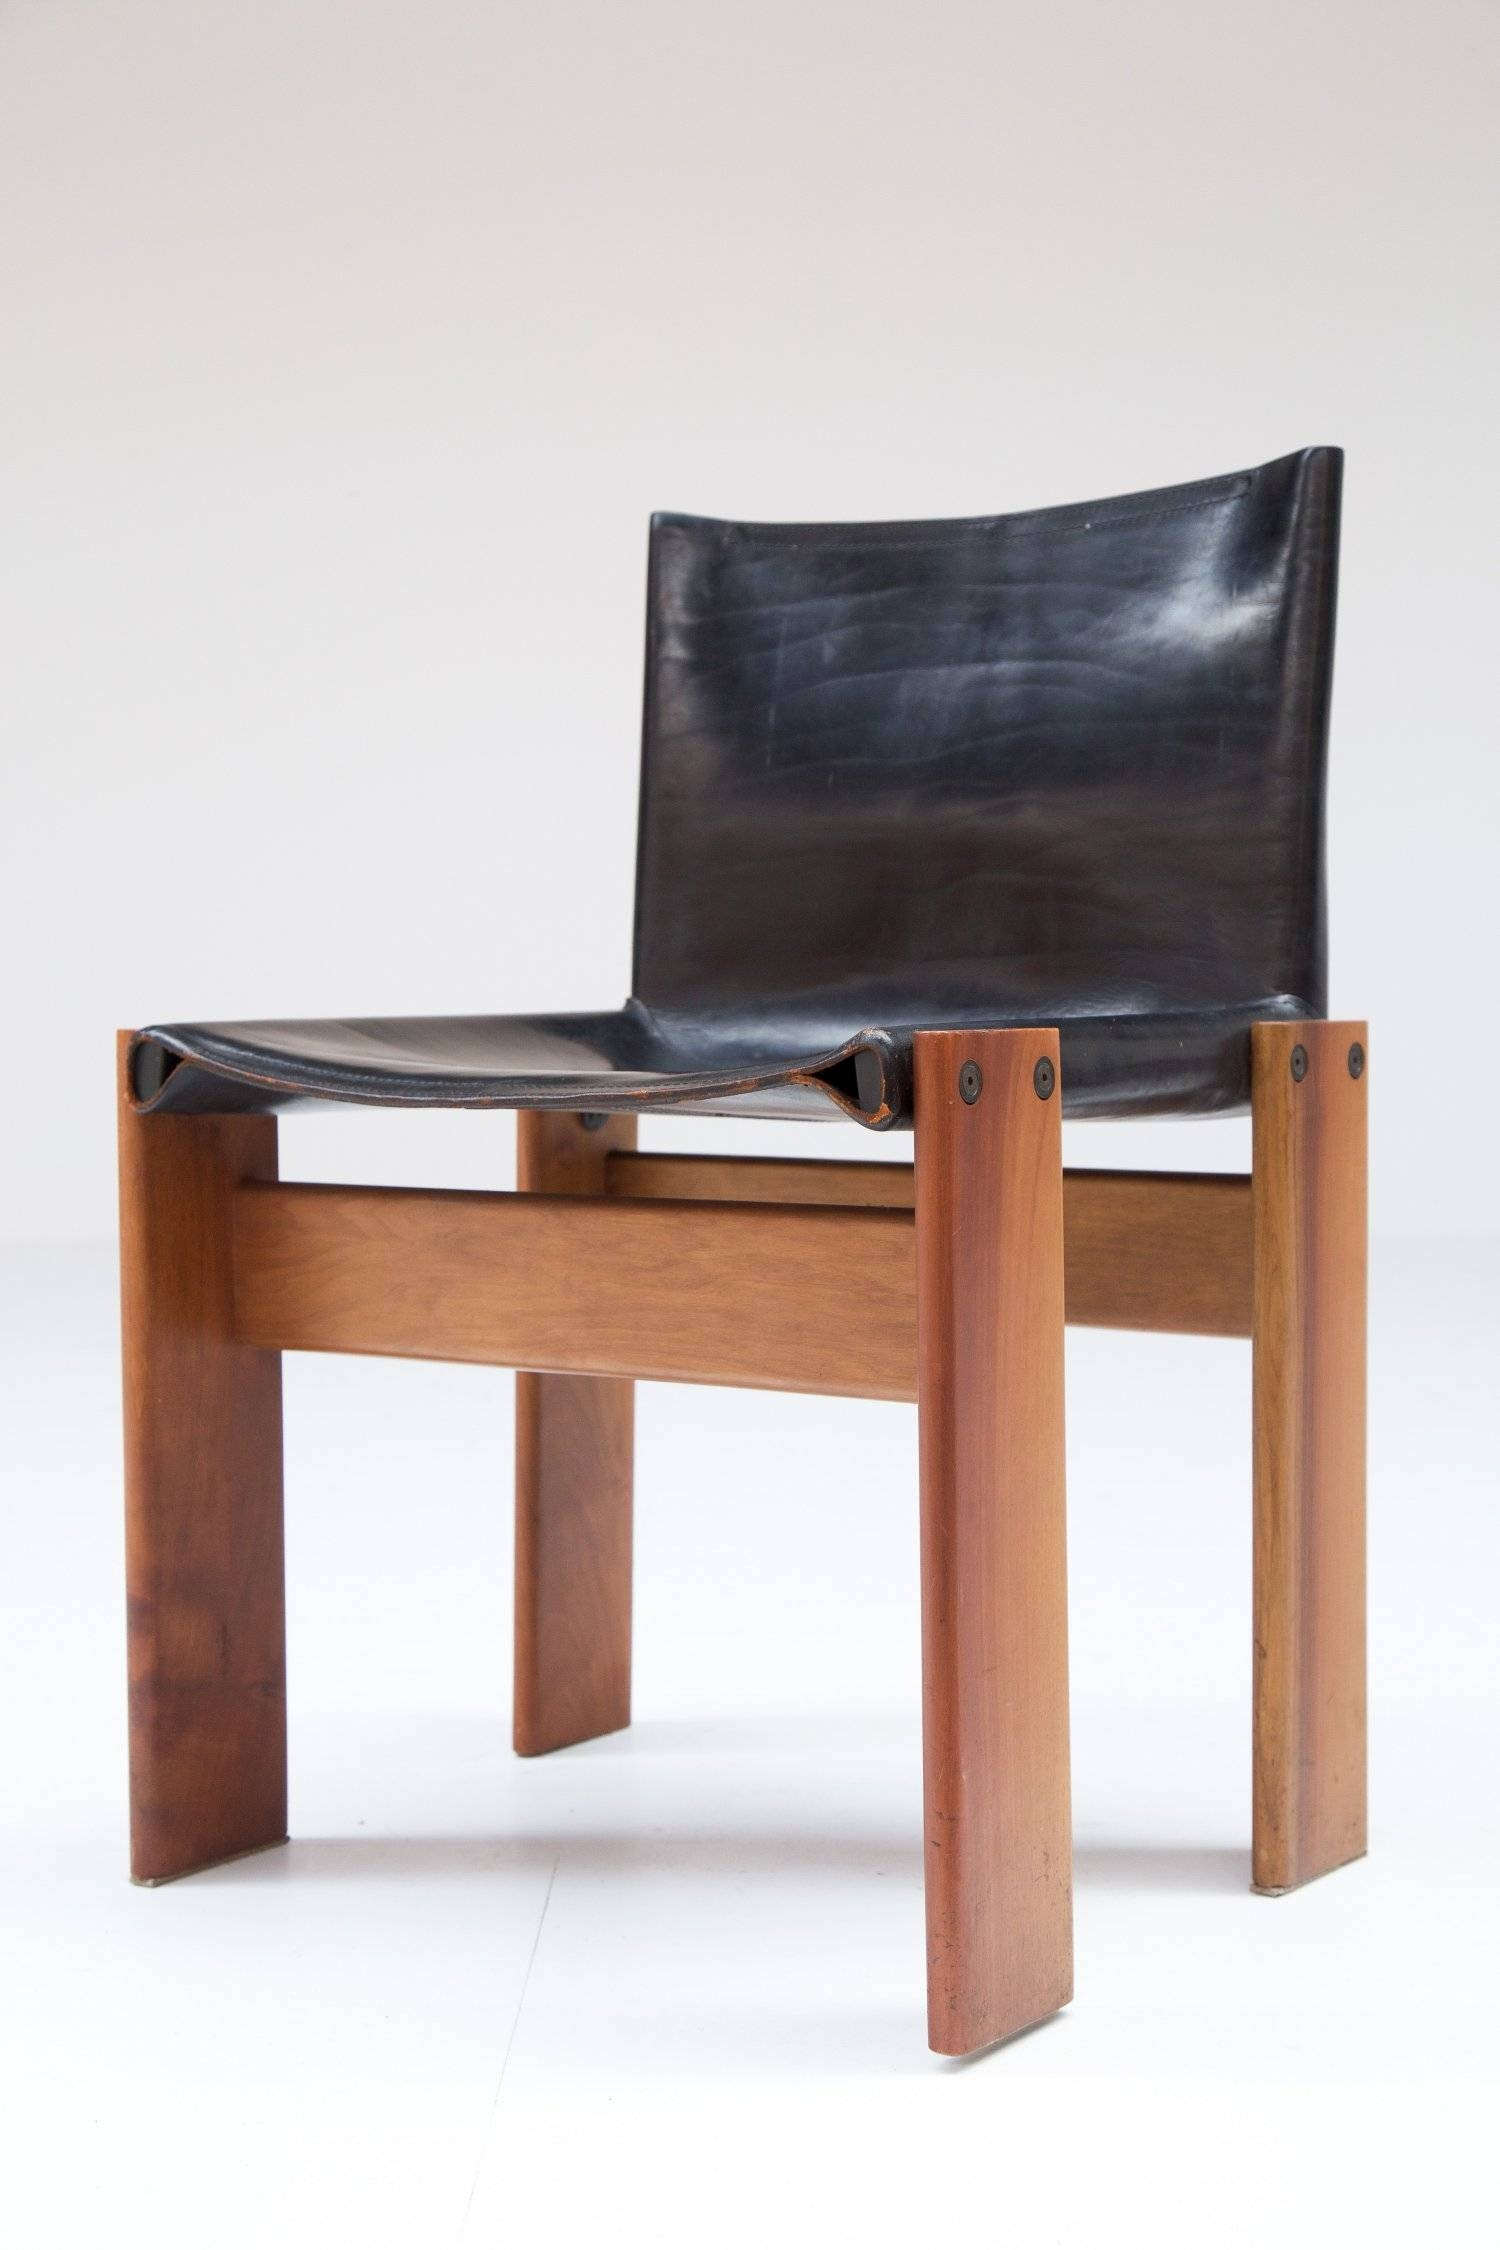 Monk Chairs Afra & Tobia Scarpa – Vanlandschoote Intended For Monk Chairs (View 12 of 30)